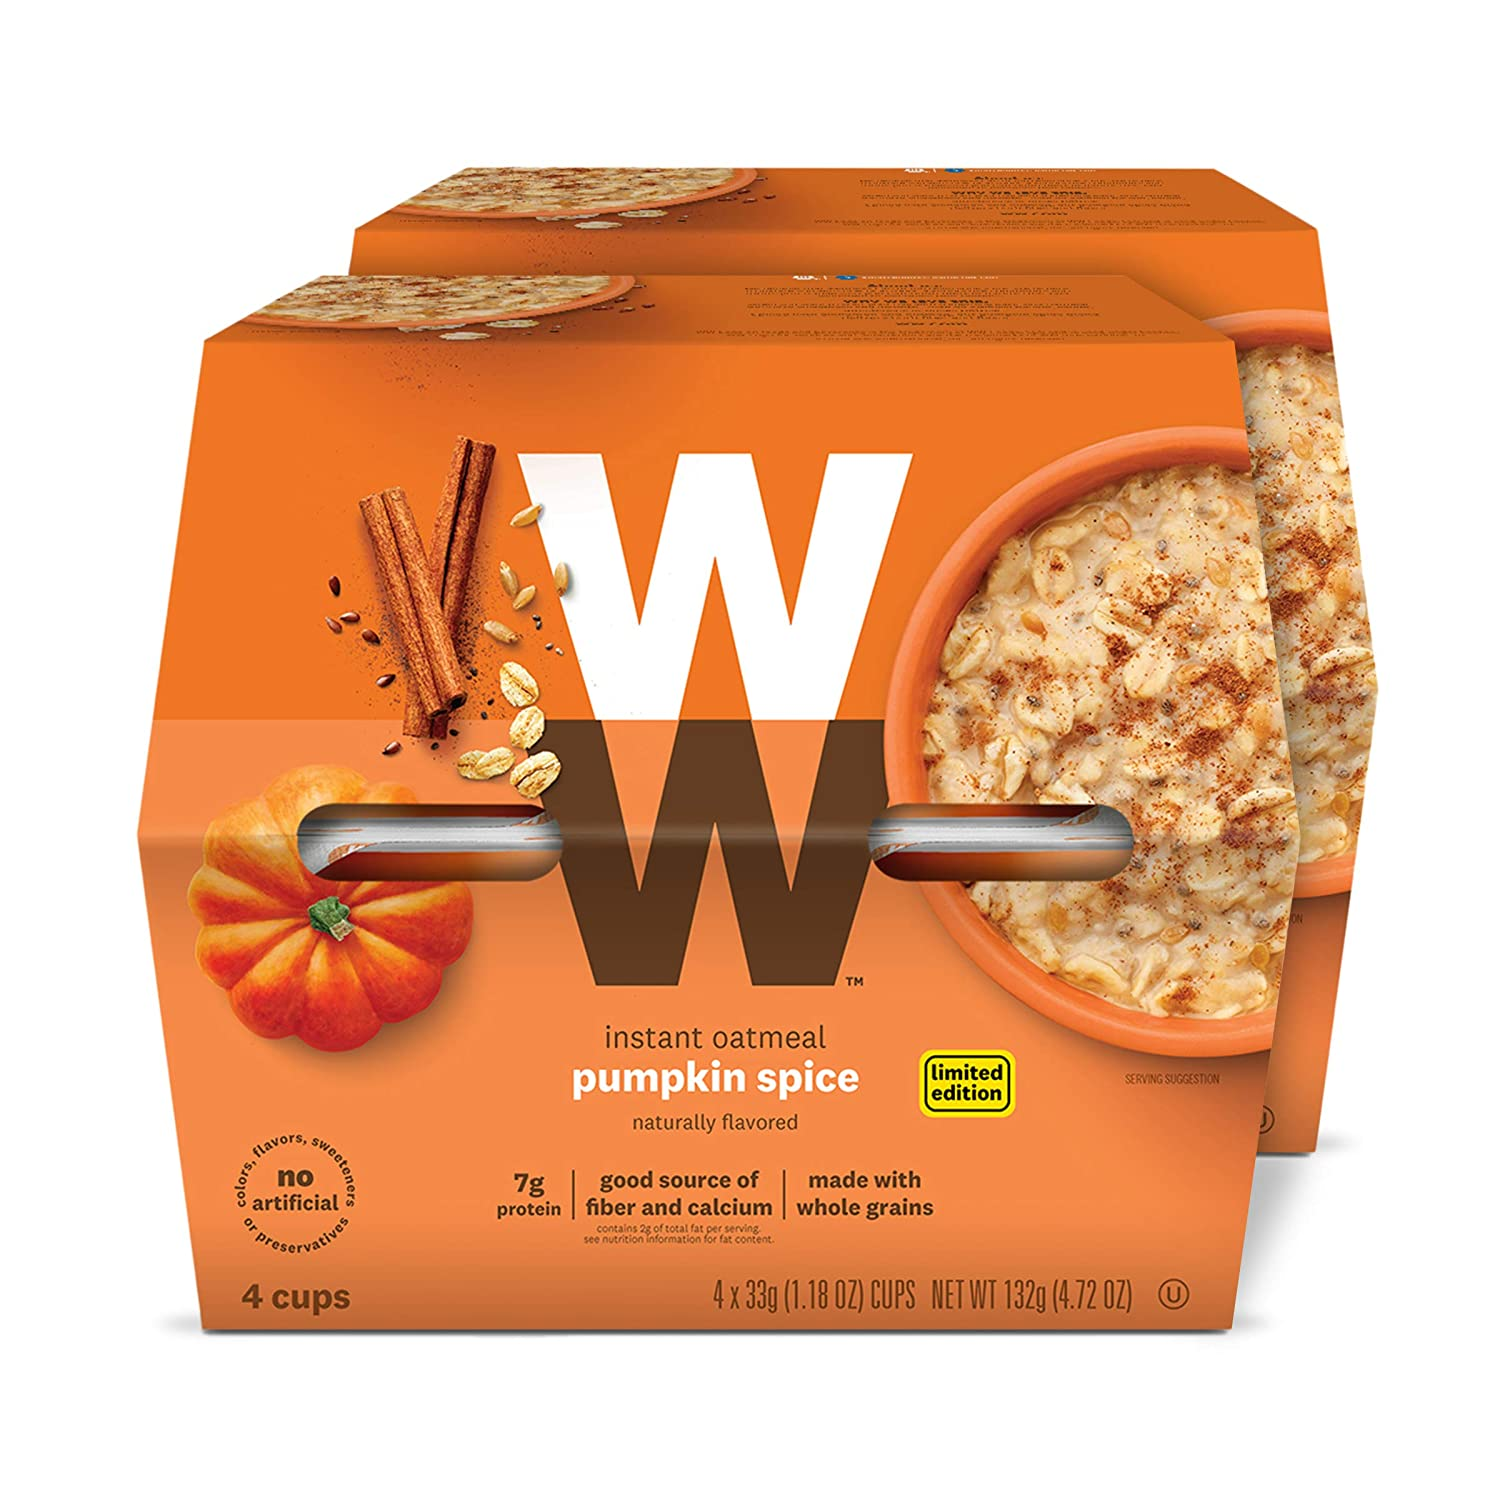 Discontinued: WW Pumpkin Spice Instant Oatmeal - 3 SmartPoints - 2 Boxes (8 Count Total) - Weight Watchers Reimagined